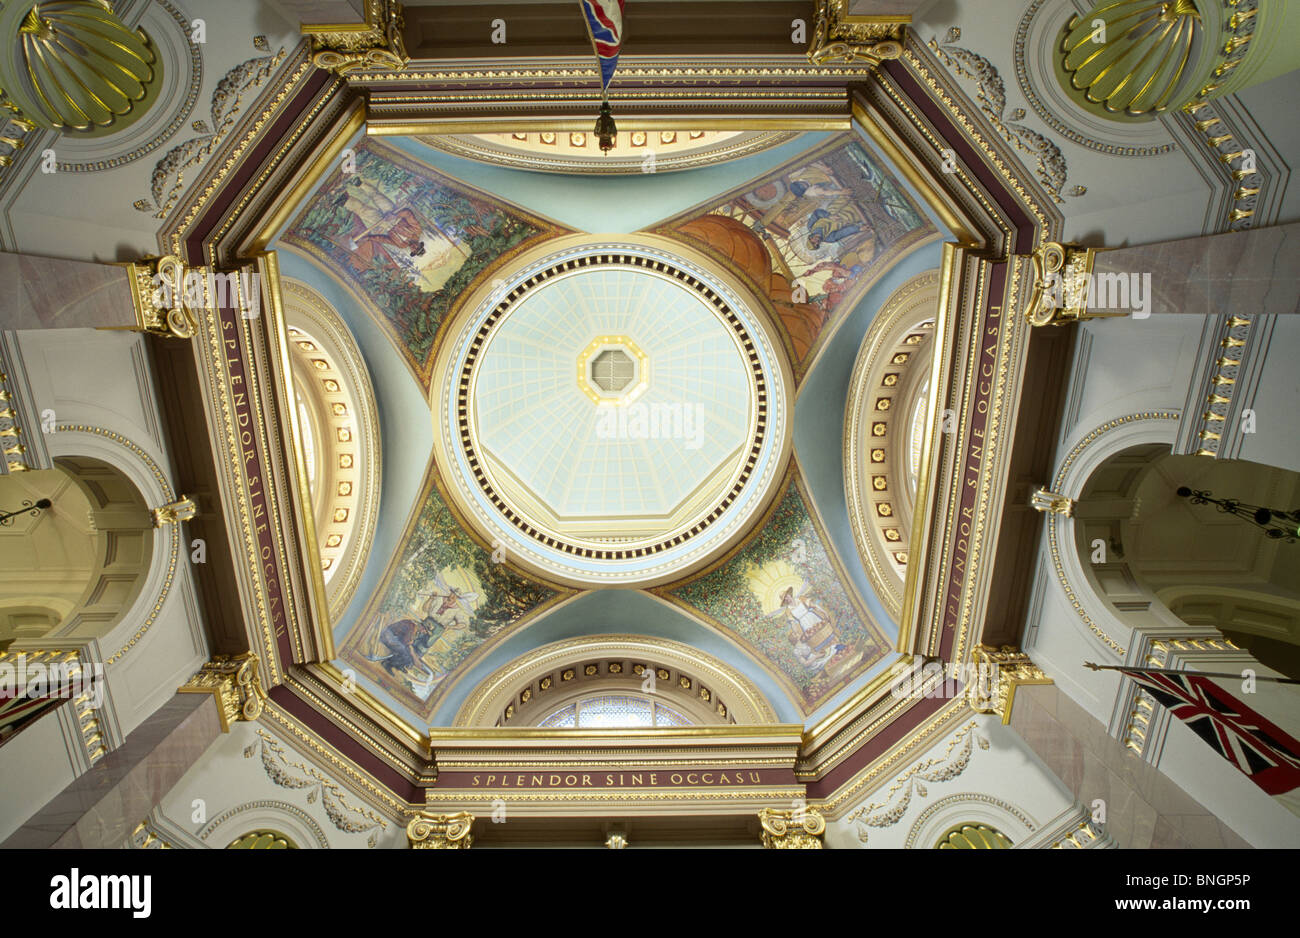 Canada british columbia victoria parliament buildings murals on ceiling low angle view